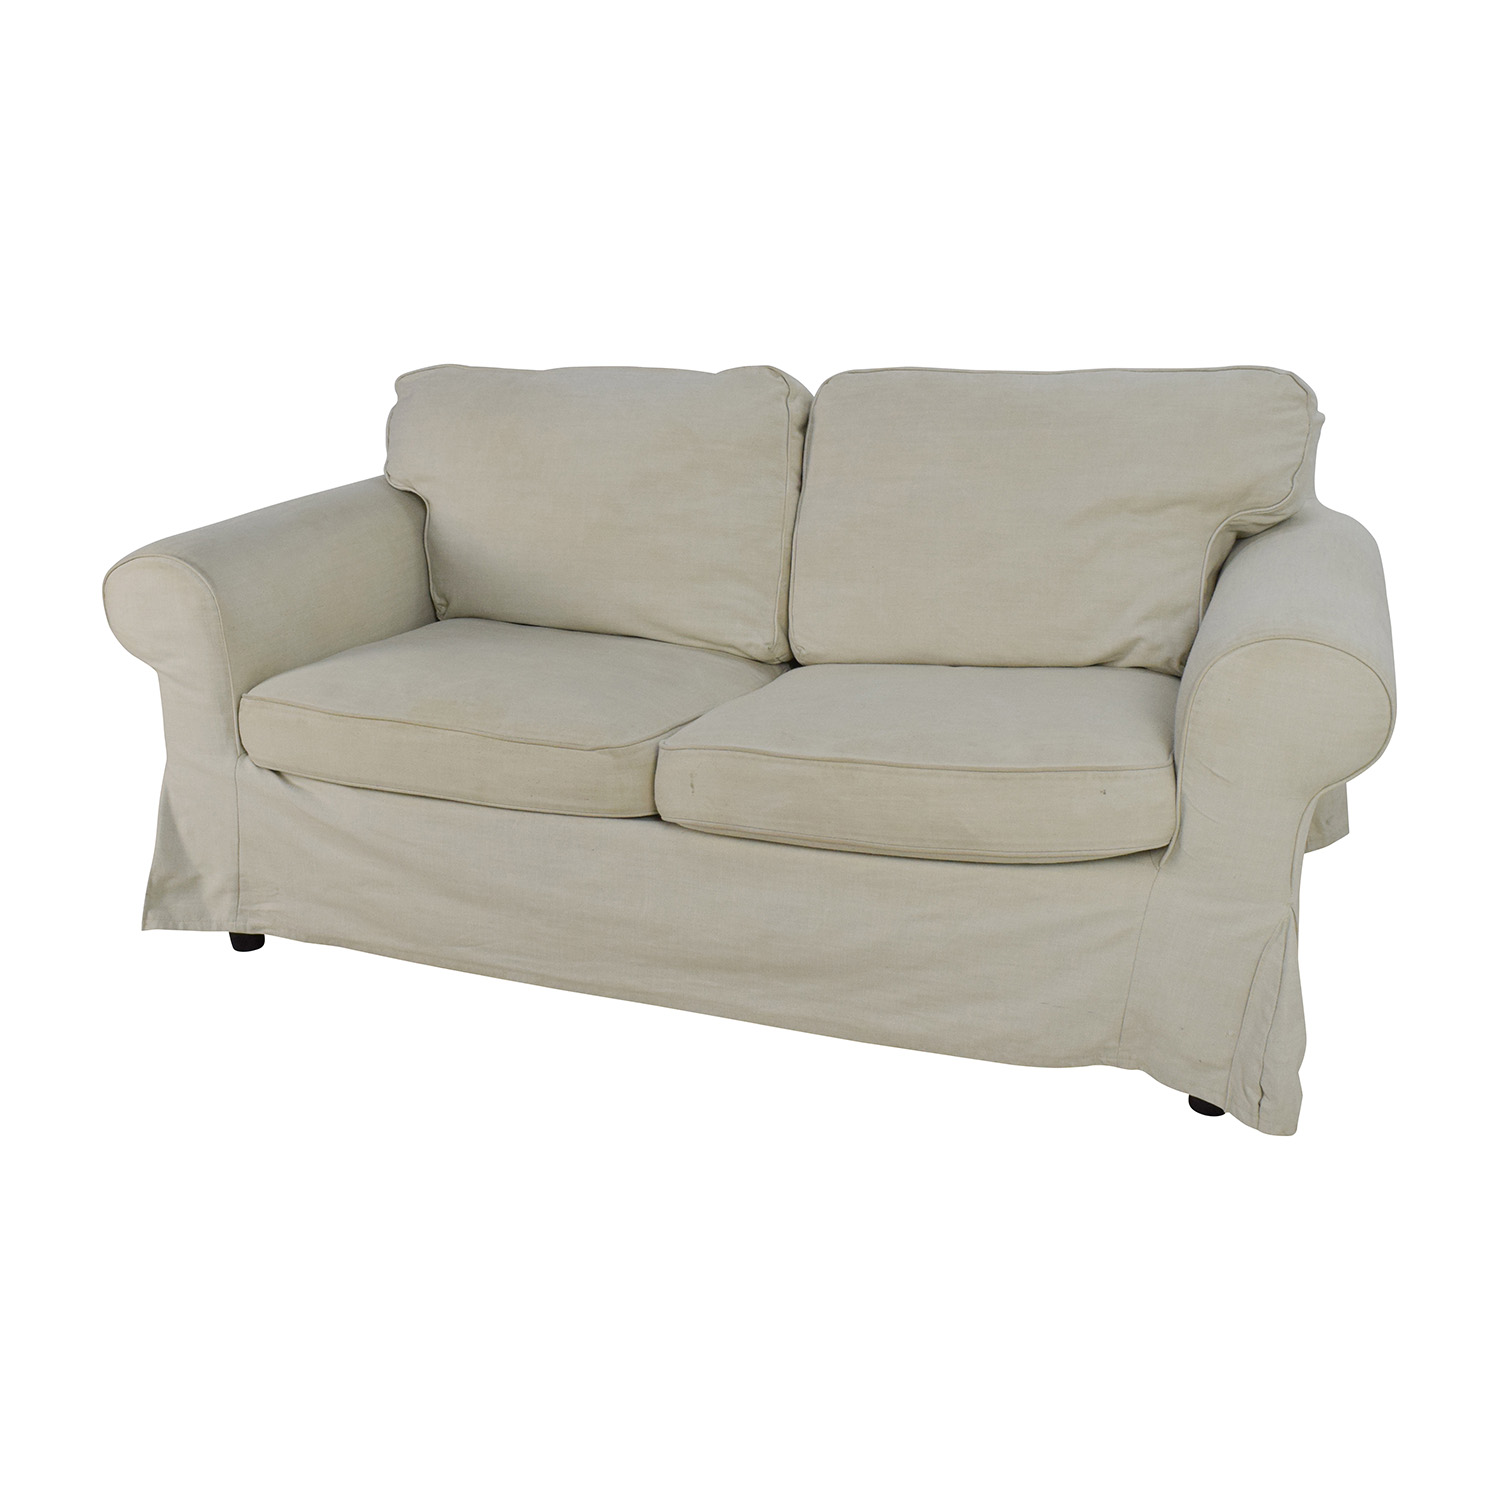 74 off ikea ikea ektorp slipcovered loveseat sofas for Classic loveseat